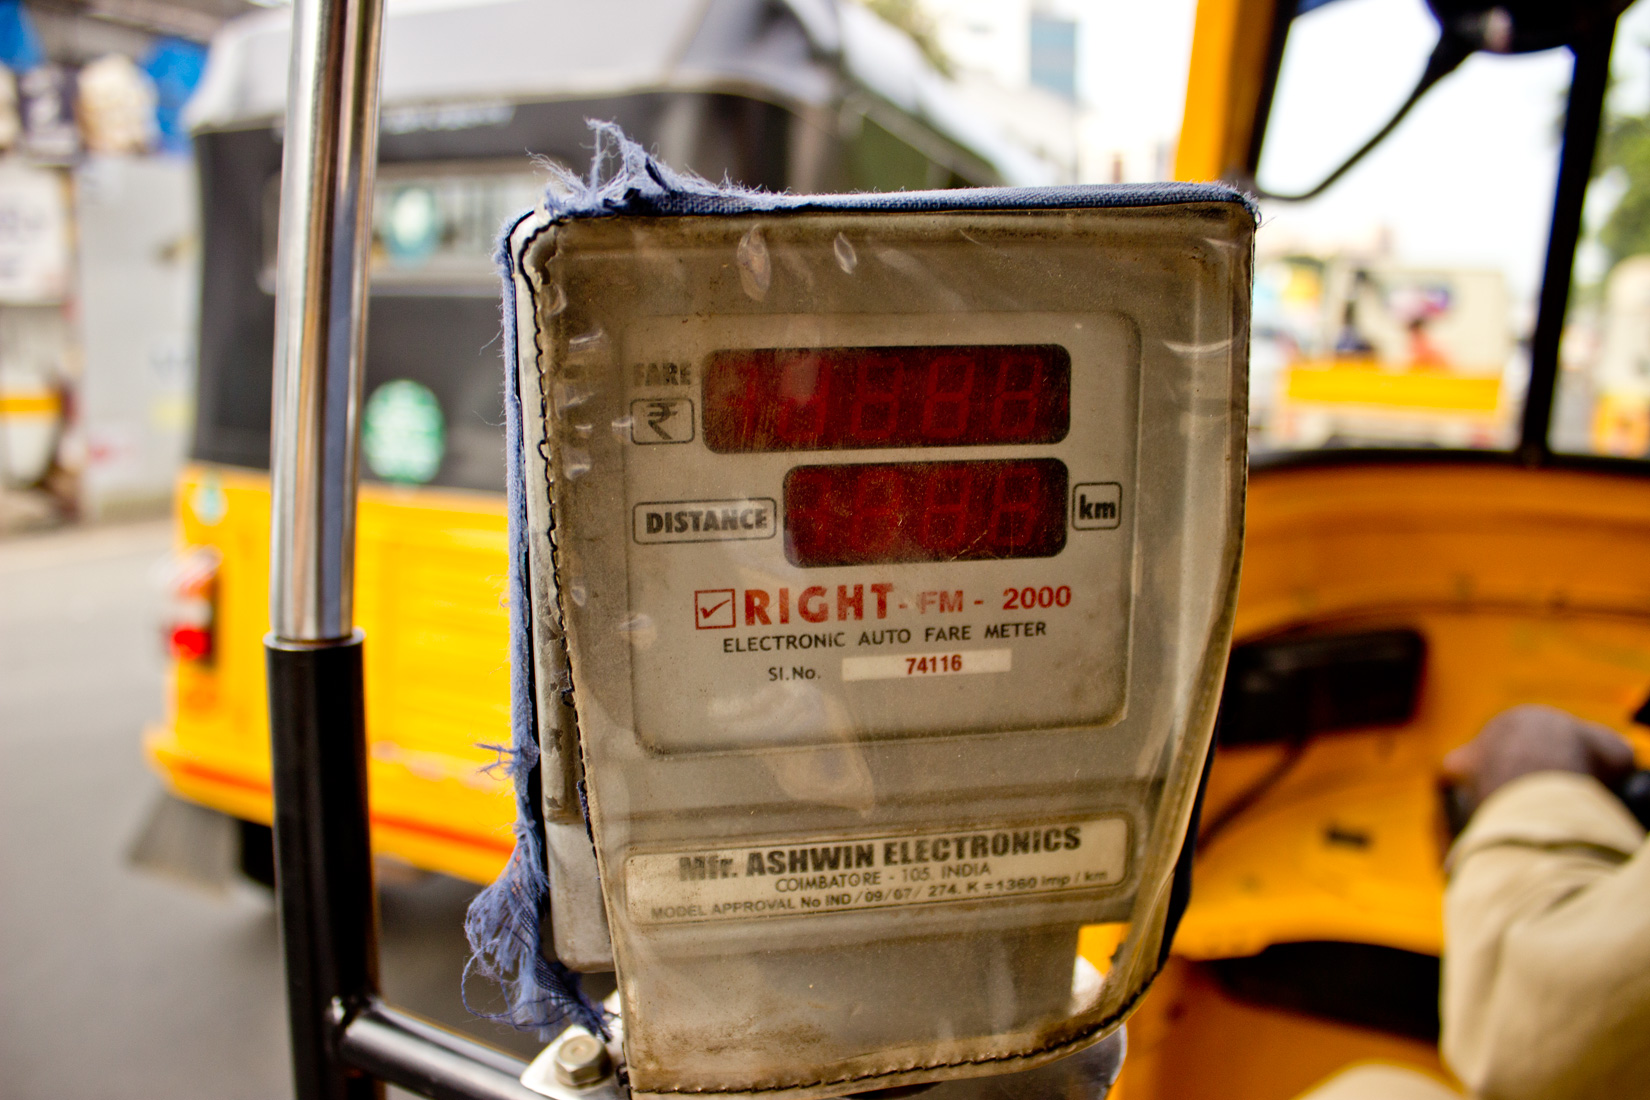 Live and Die by the meter, inside the Indian auto-rikshaw